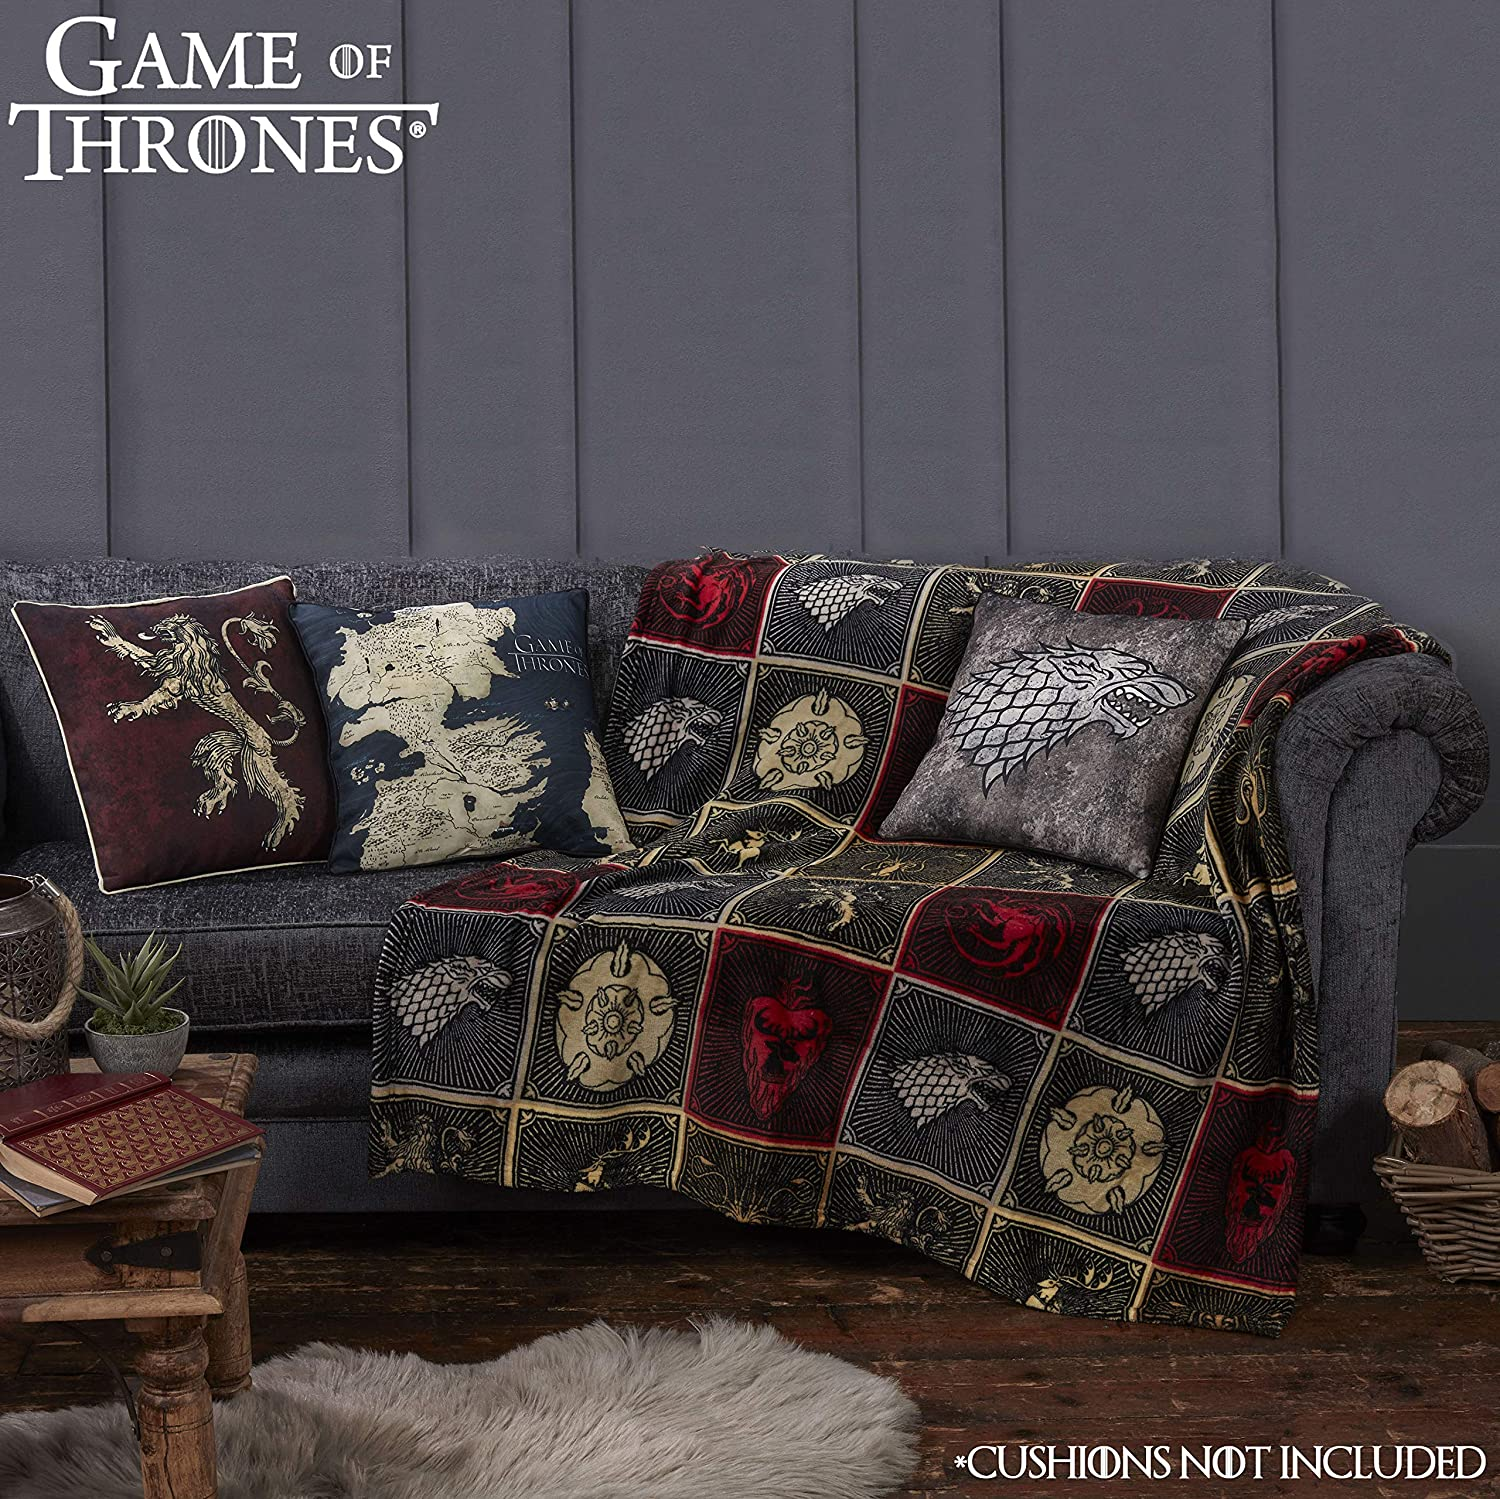 Game Of Thrones Juego de Tronos Regalos Merchandise Got ...